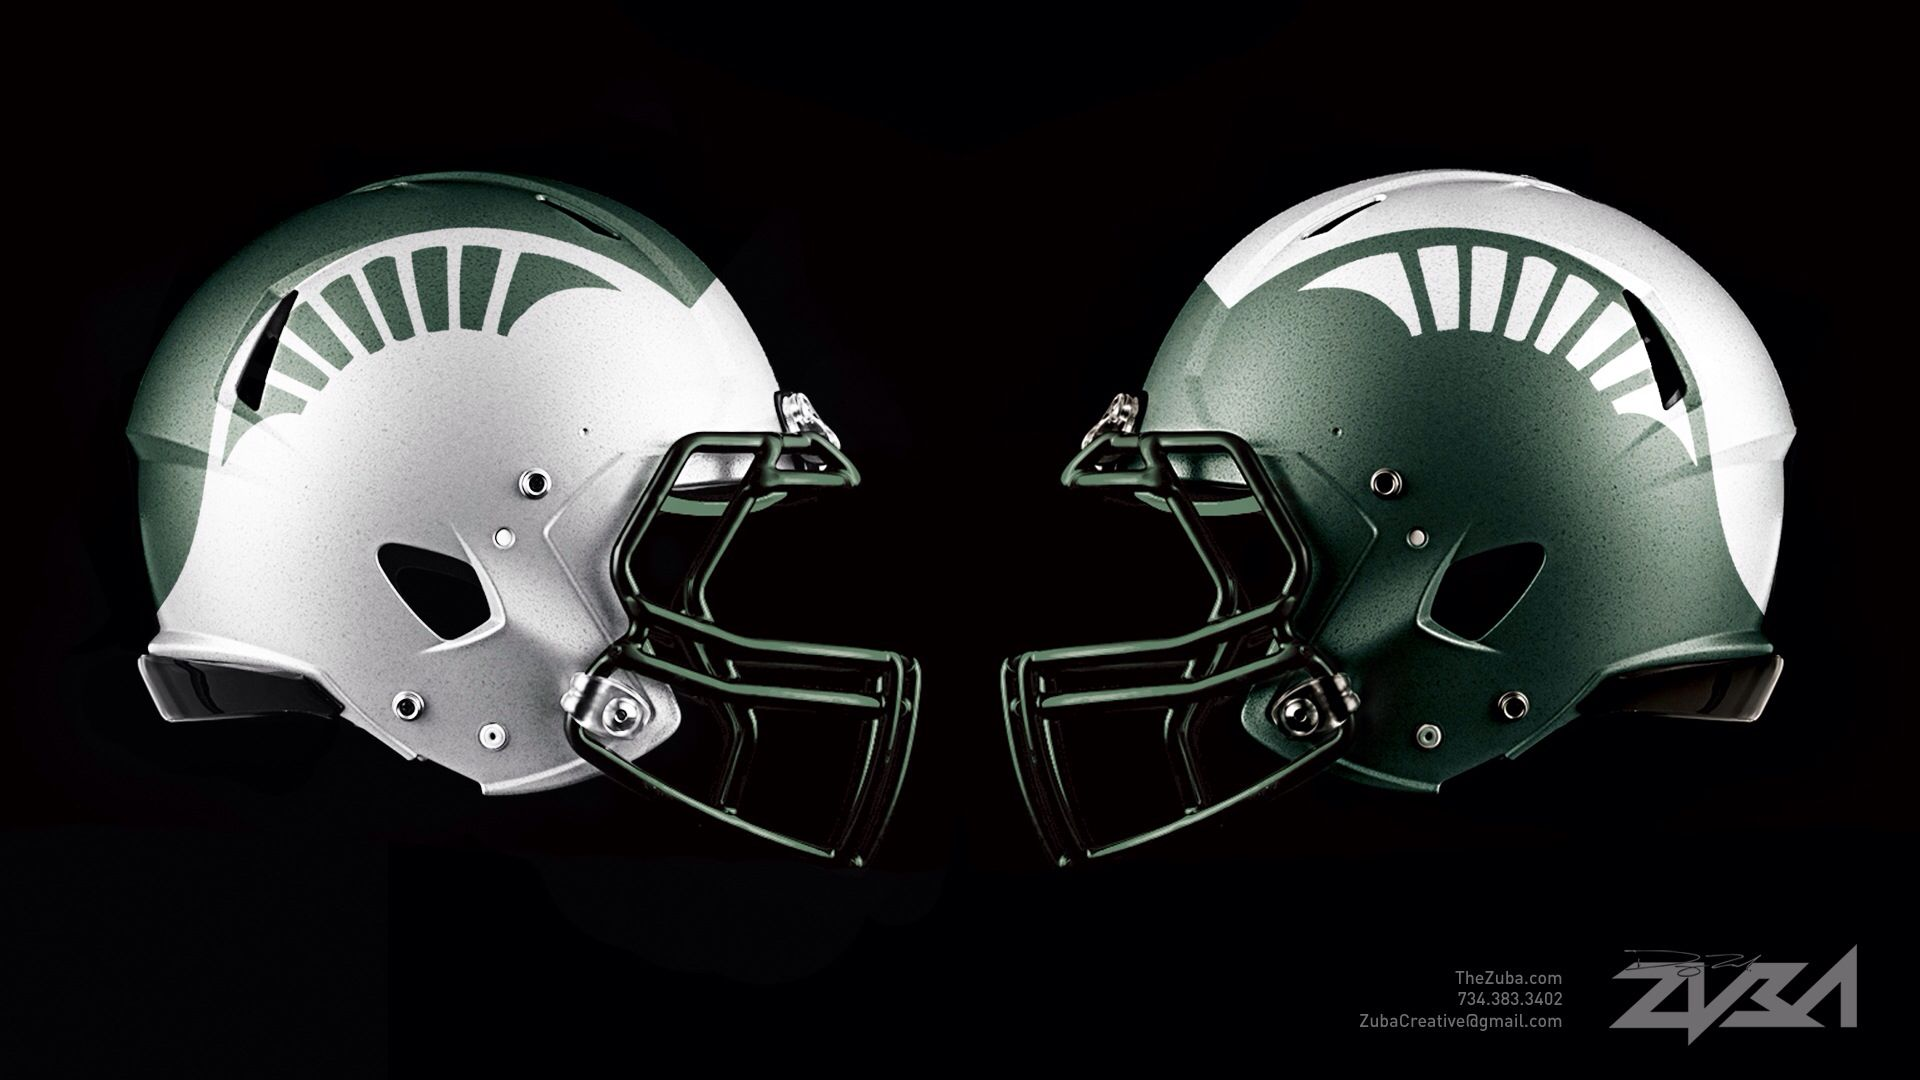 msu football helmet concept sports design pinterest